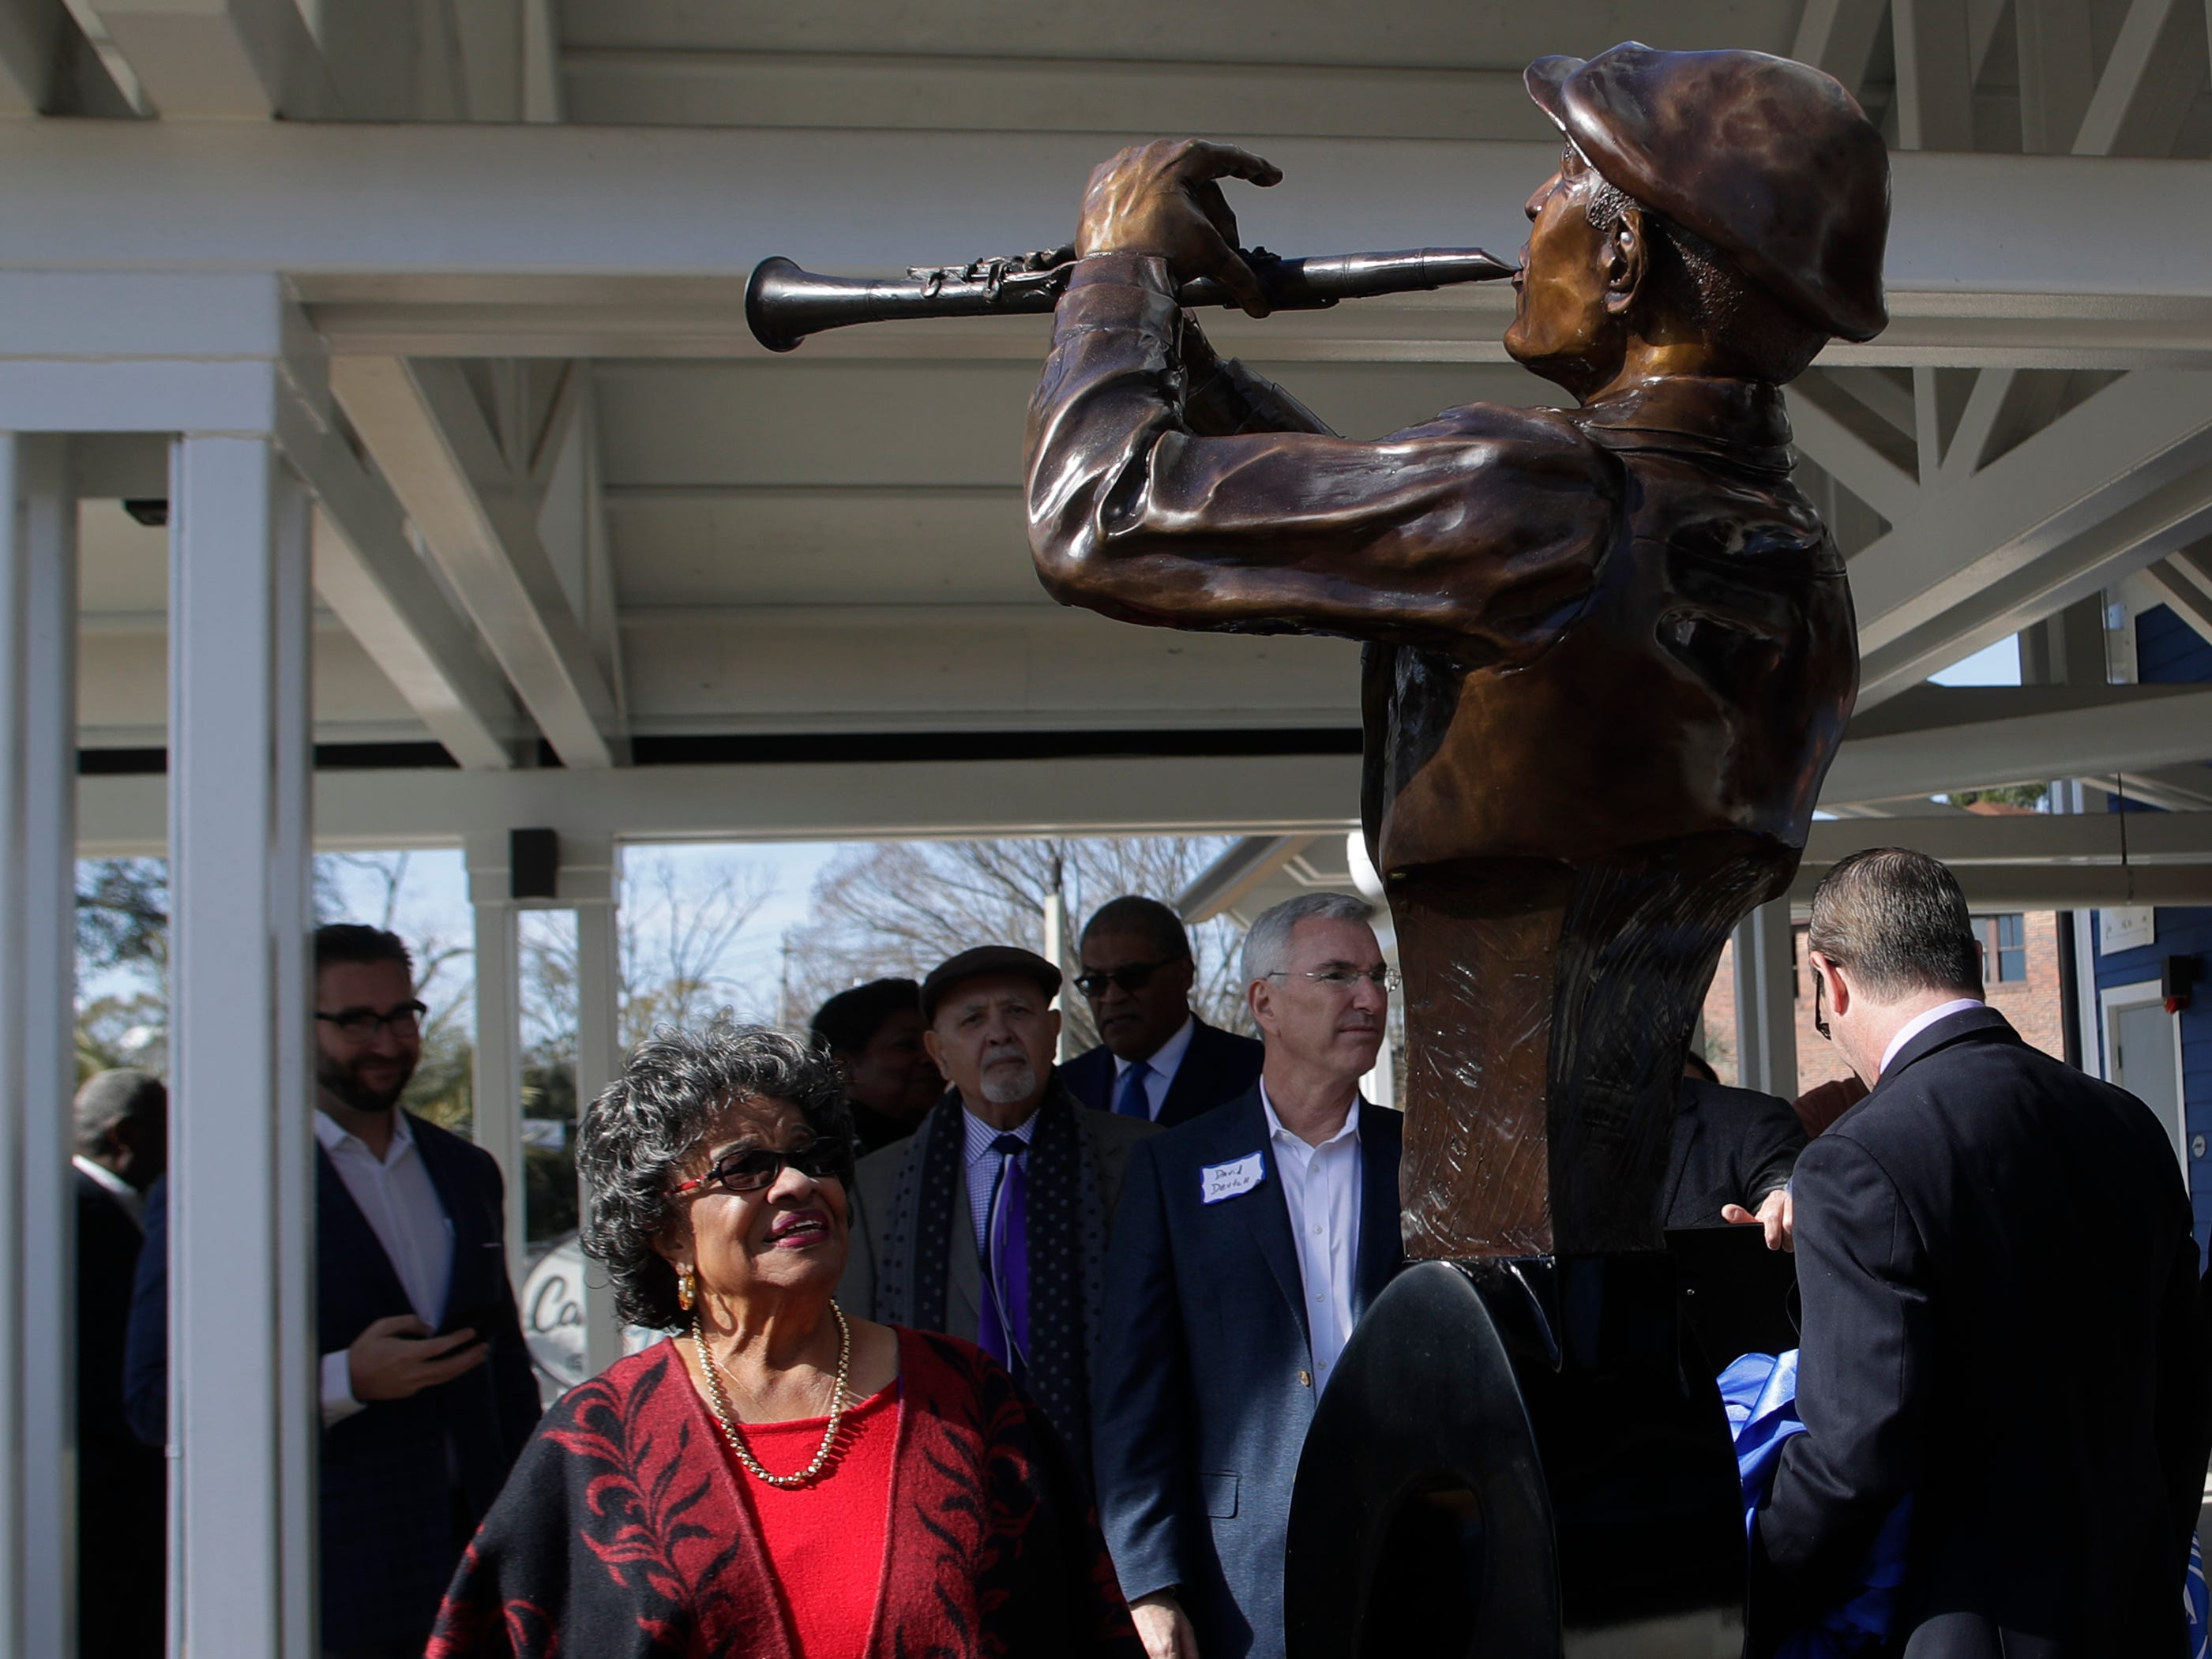 """Lucille Casañas Alexander smiles as the statue of her father Aurelío Angel Casañas is revealed at the grand opening celebration for the  Casañas Village Apartments at Frenchtown Square Thursday, Jan. 31, 2019. Casañas came to Tallahassee from Cuba in the late 1800s. The statue portrays him playing the clarinet, which he played in a local group called """"The Tallahassee Band."""""""